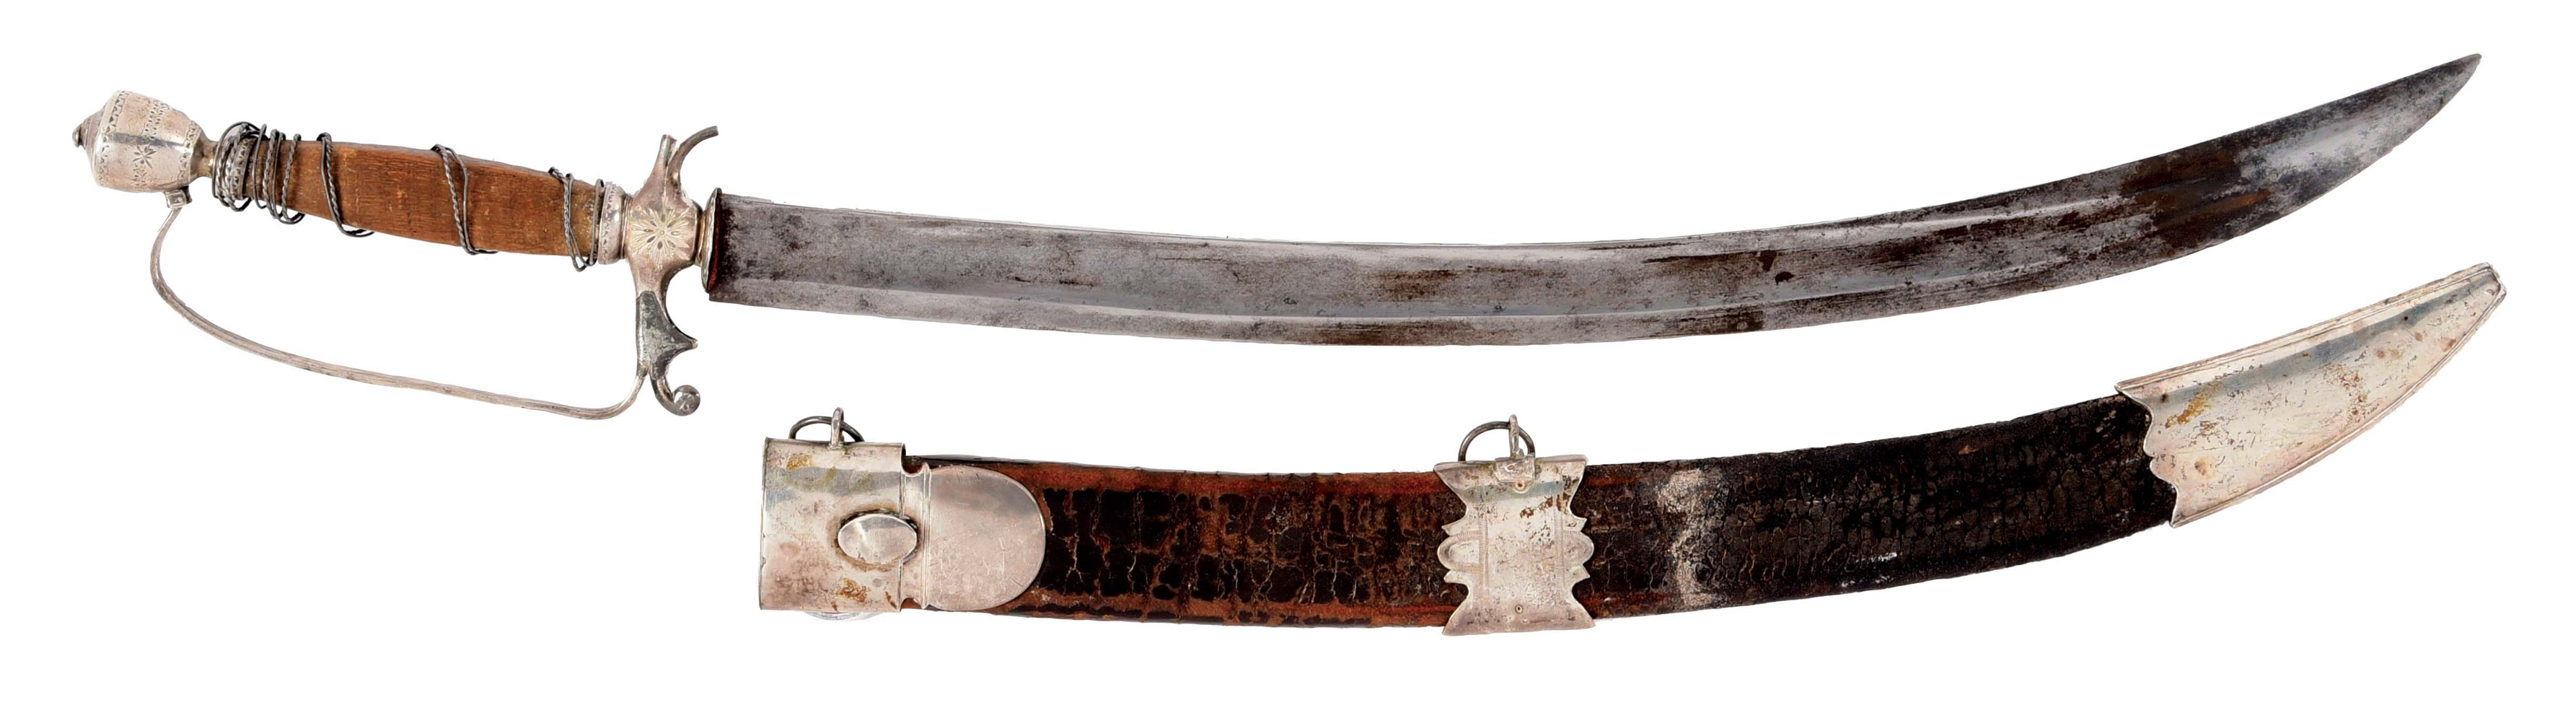 SILVER MOUNTED DIRK WITH SCABBARD.